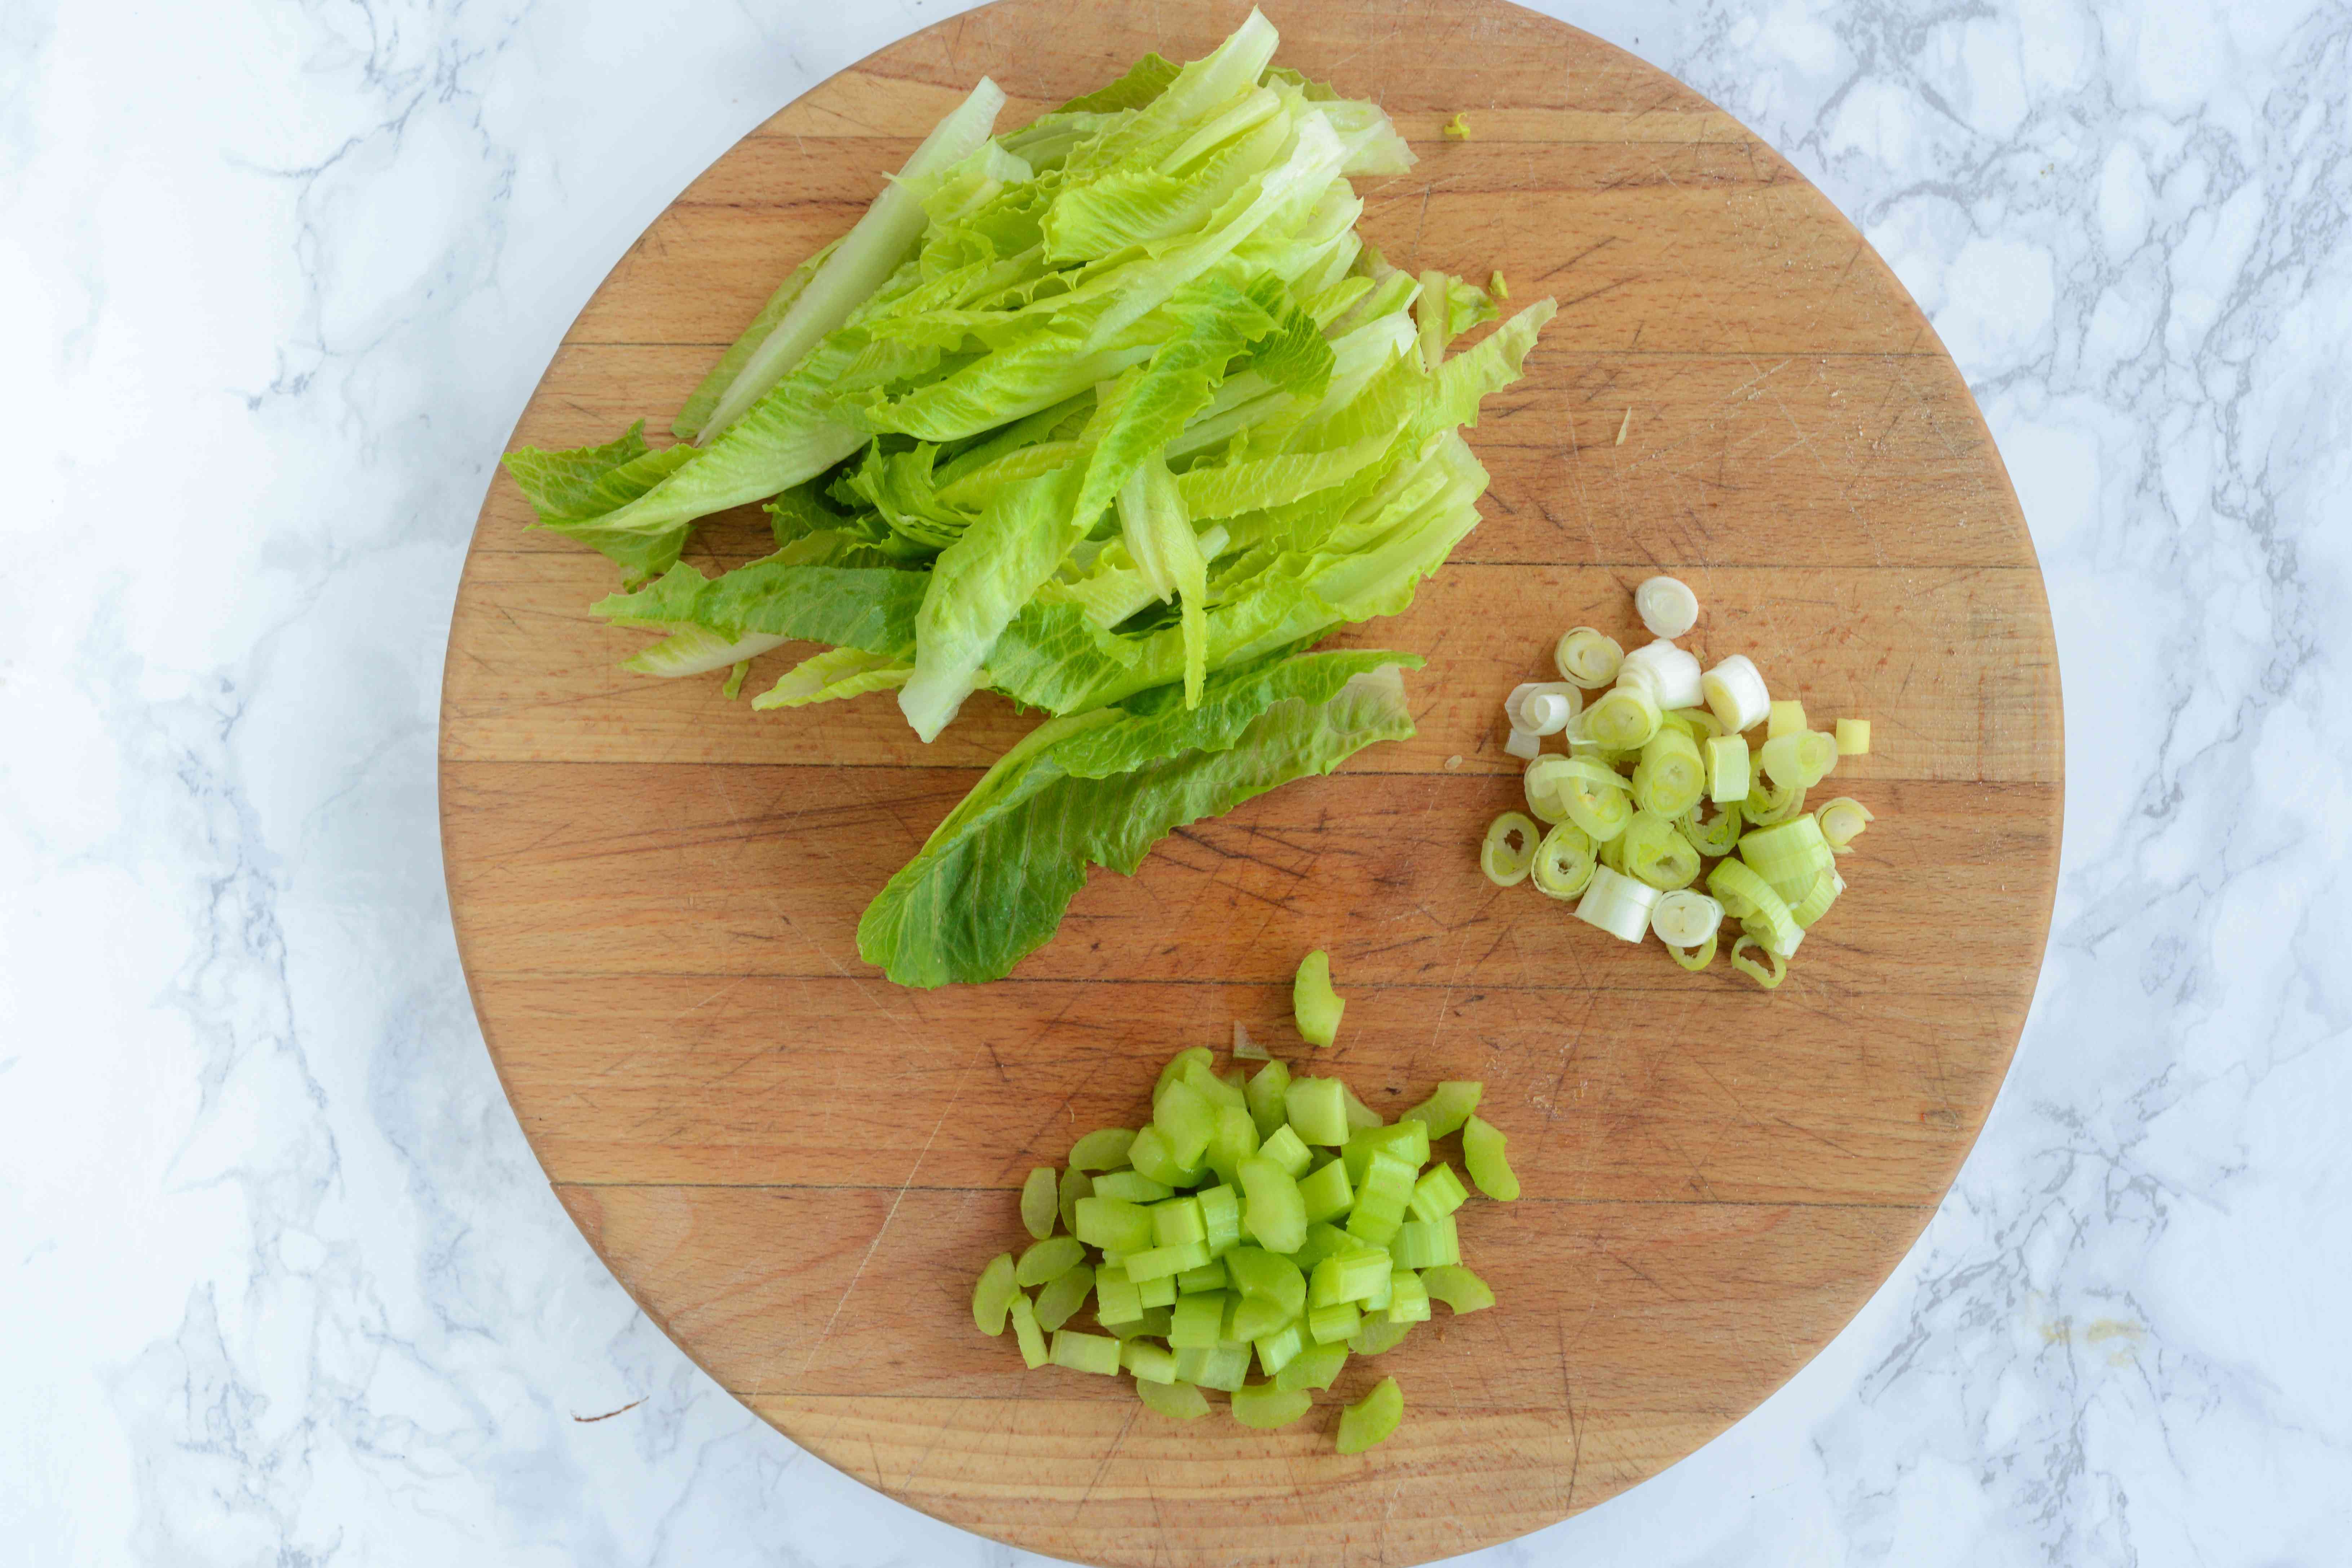 Chopped ingredients for apple walnut salad